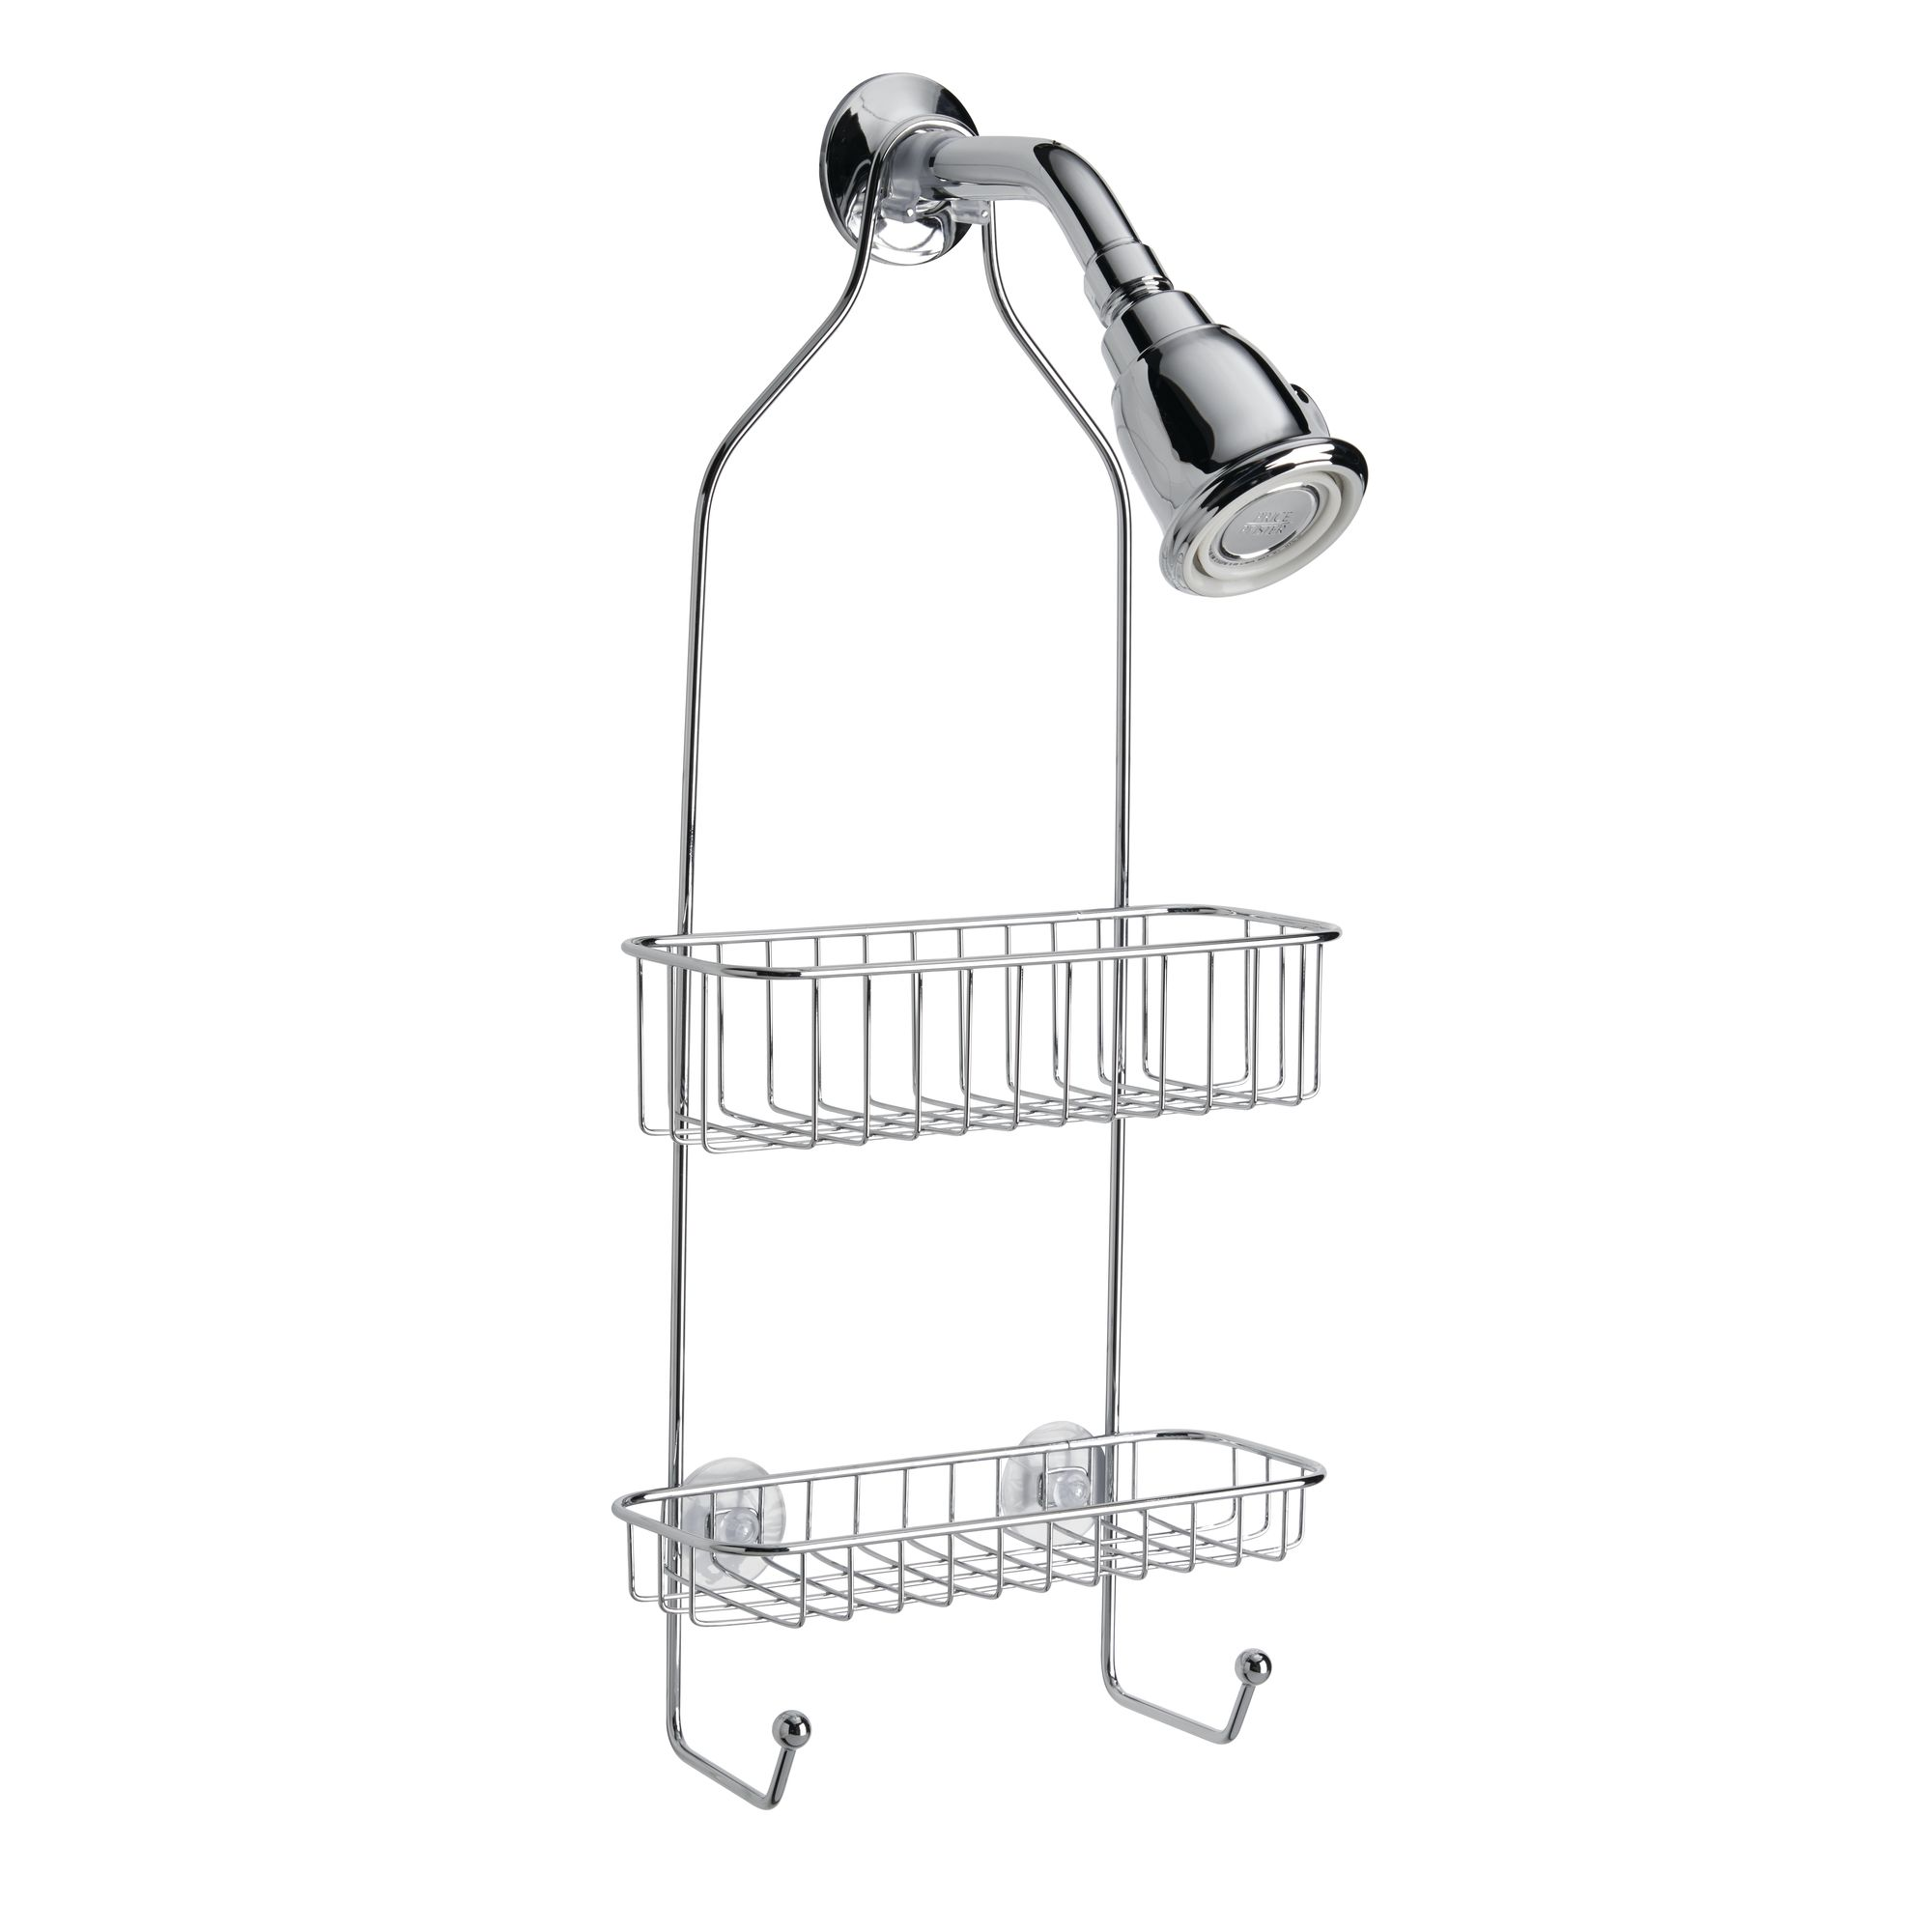 InterDesign Rondo Bathroom Shower Caddy For Shampoo, Conditioner, Soap,  Polished Stainless Steel